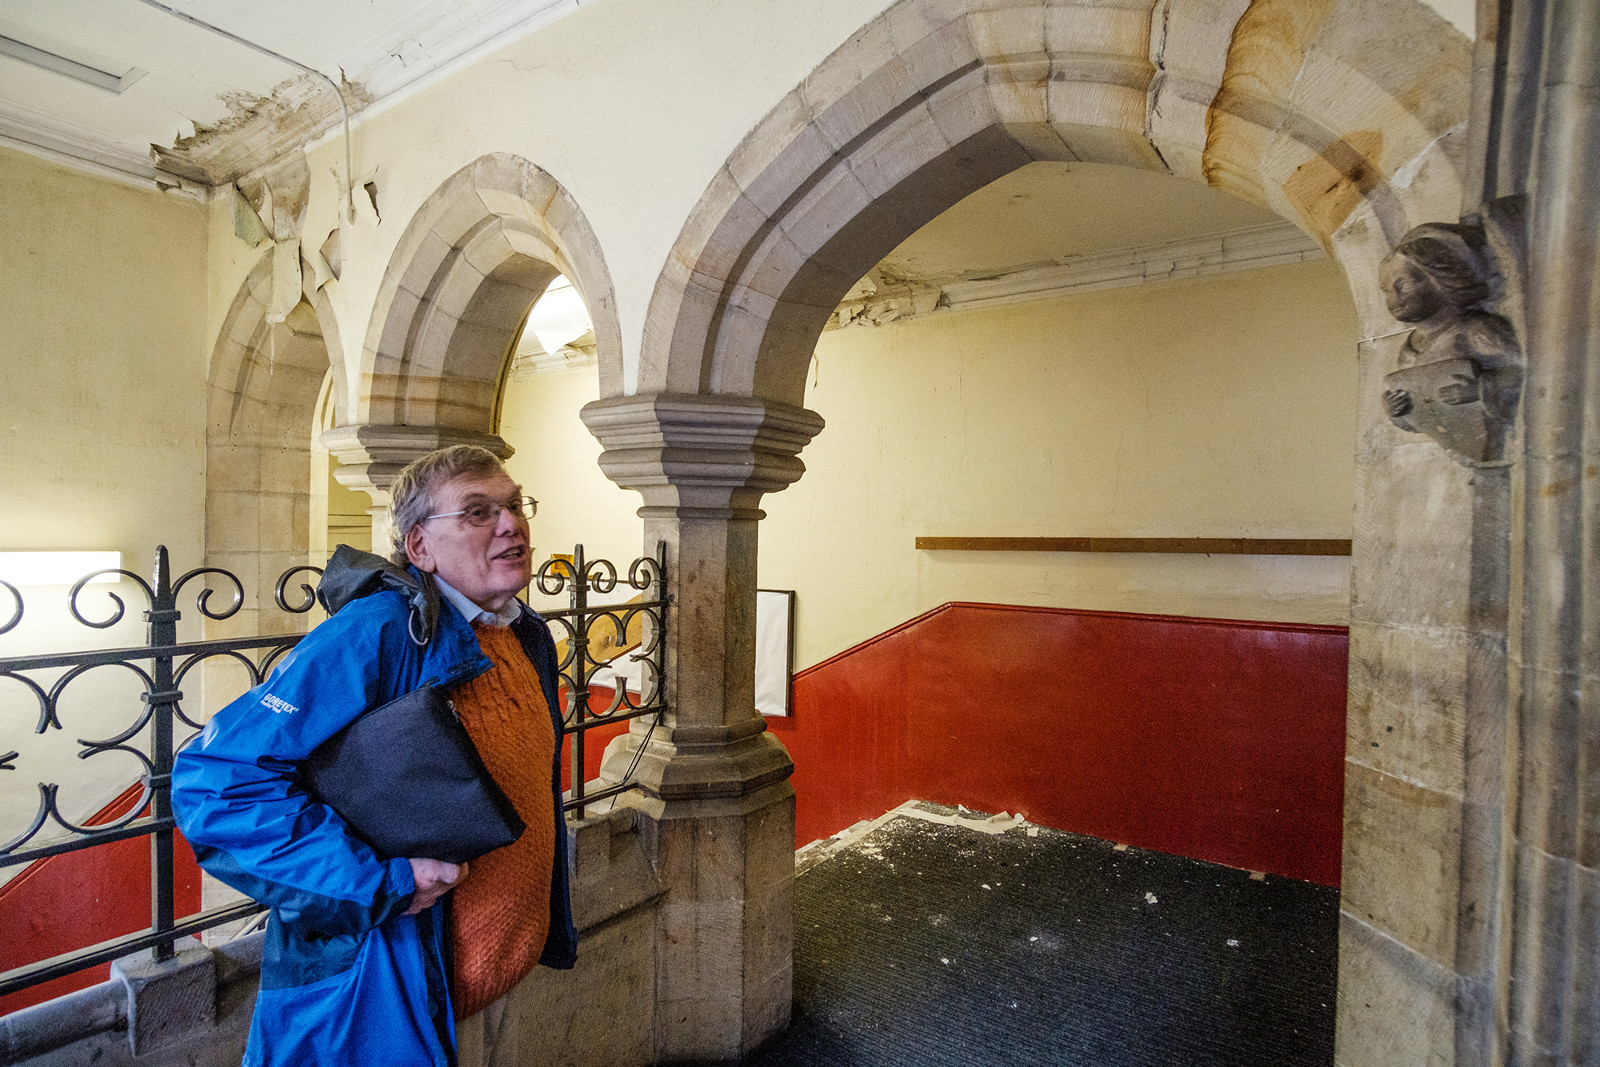 Project leader James Gravenor surveys the damage in the Old Grammar School in Richmond Picture: Guy Carpenter